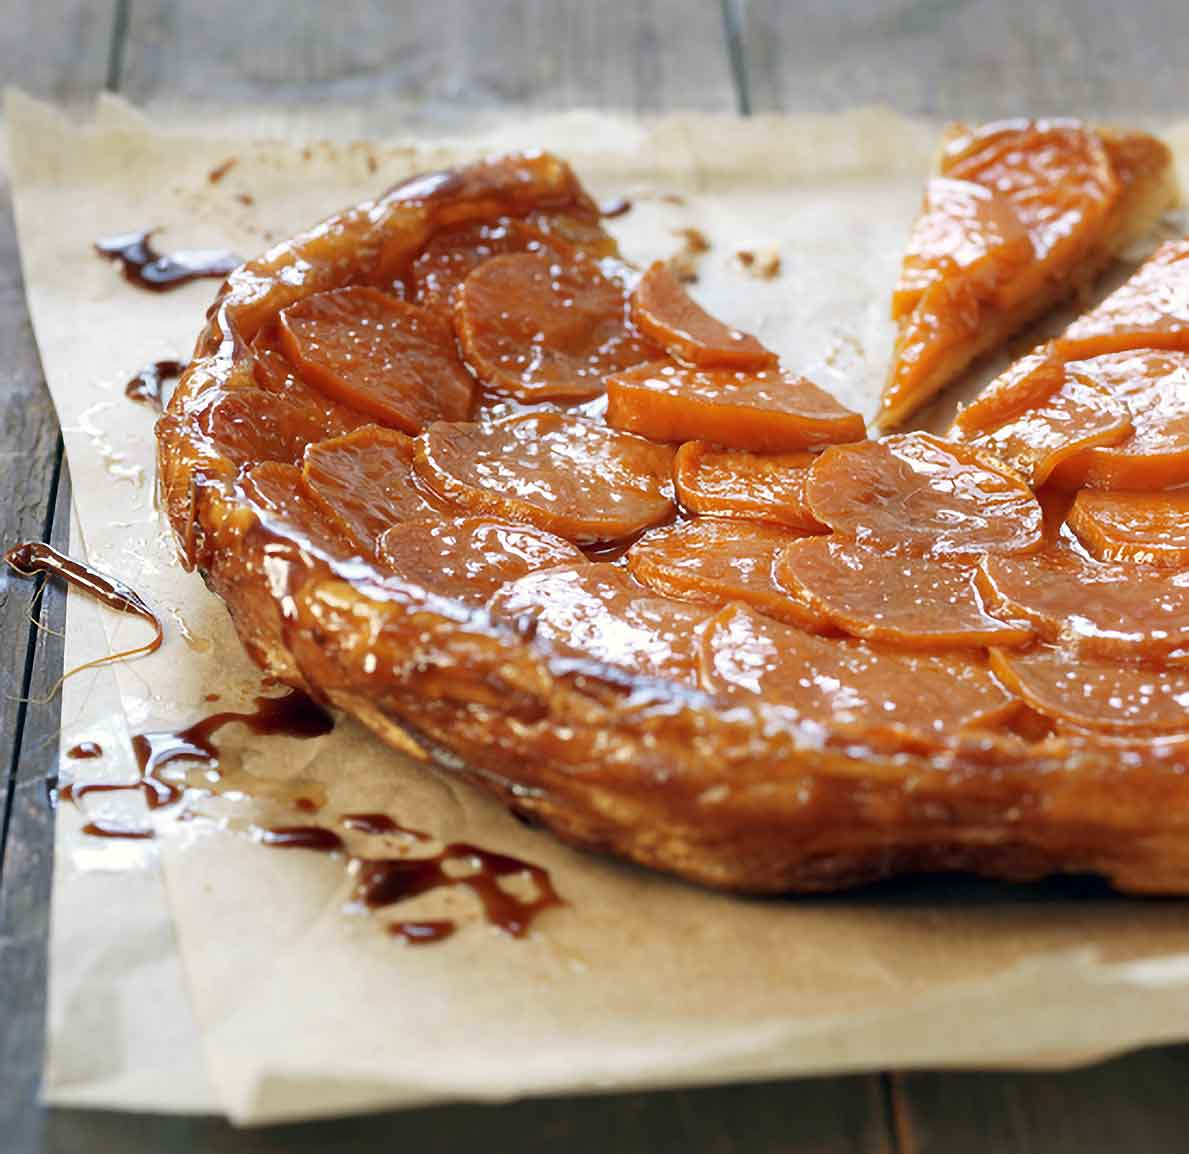 A tart tatin on parchment made with puff pastry crust and on top slices of caramelized sweet potatoes